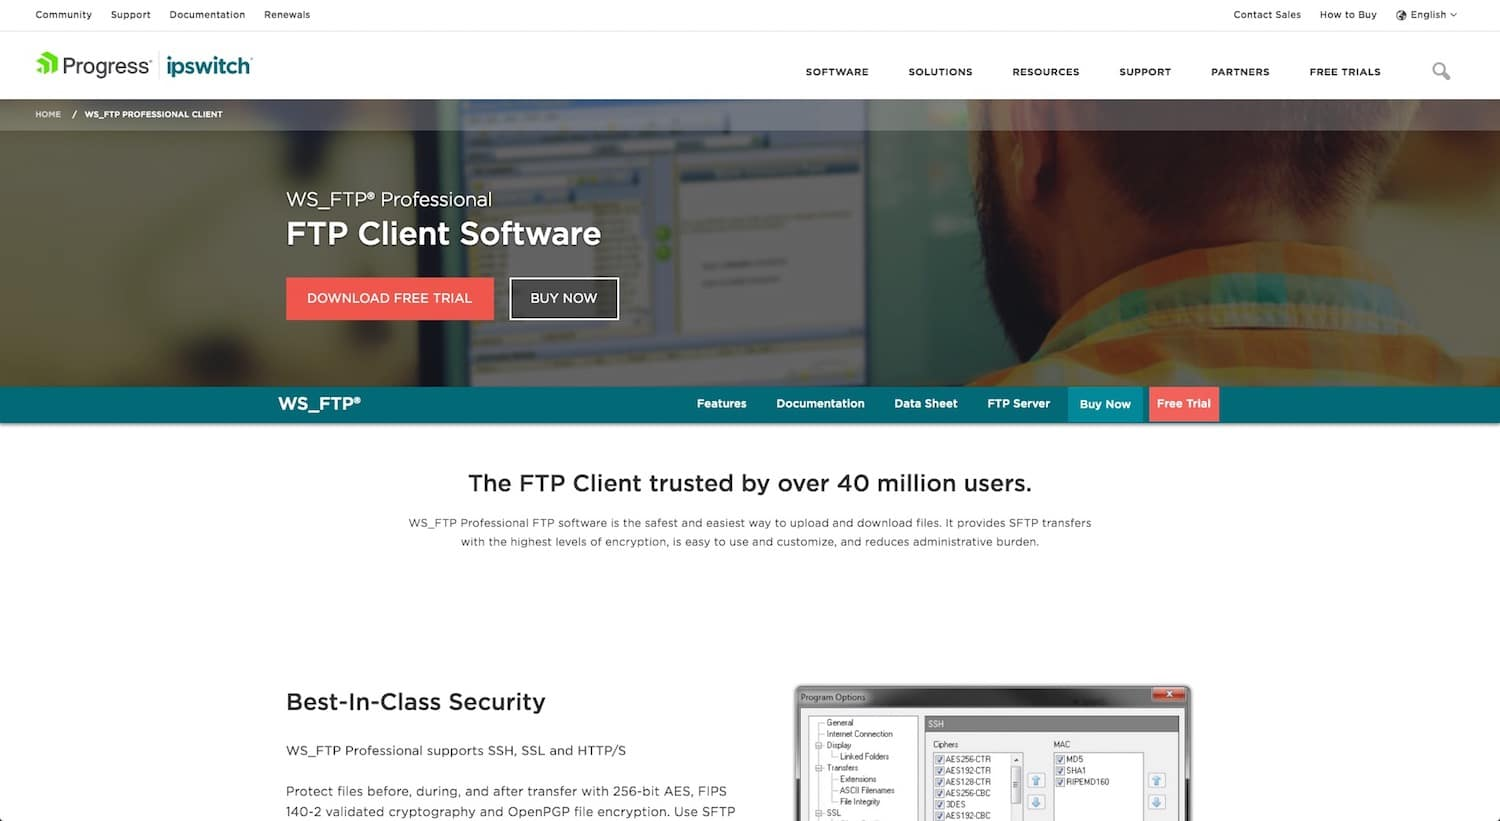 Beste FTP-clients: WS_FTP® Professional